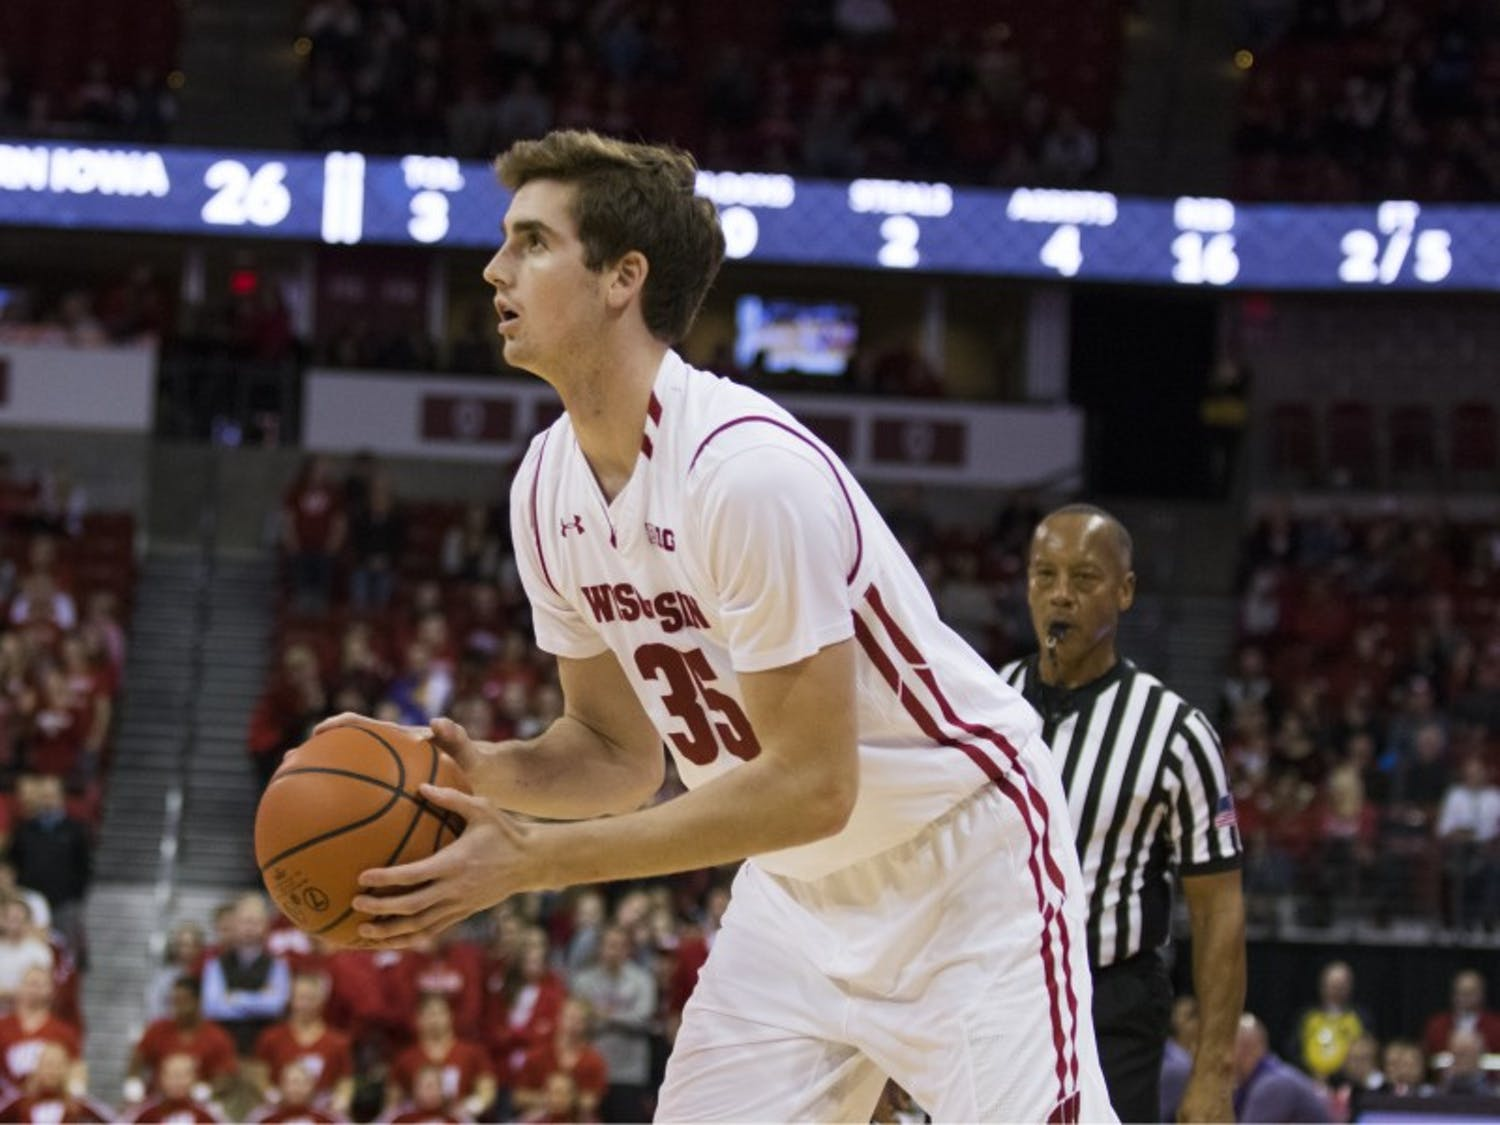 Nate Reuvers scored a team-high 15 points to lead the Badgers in an upset win over Michigan State.